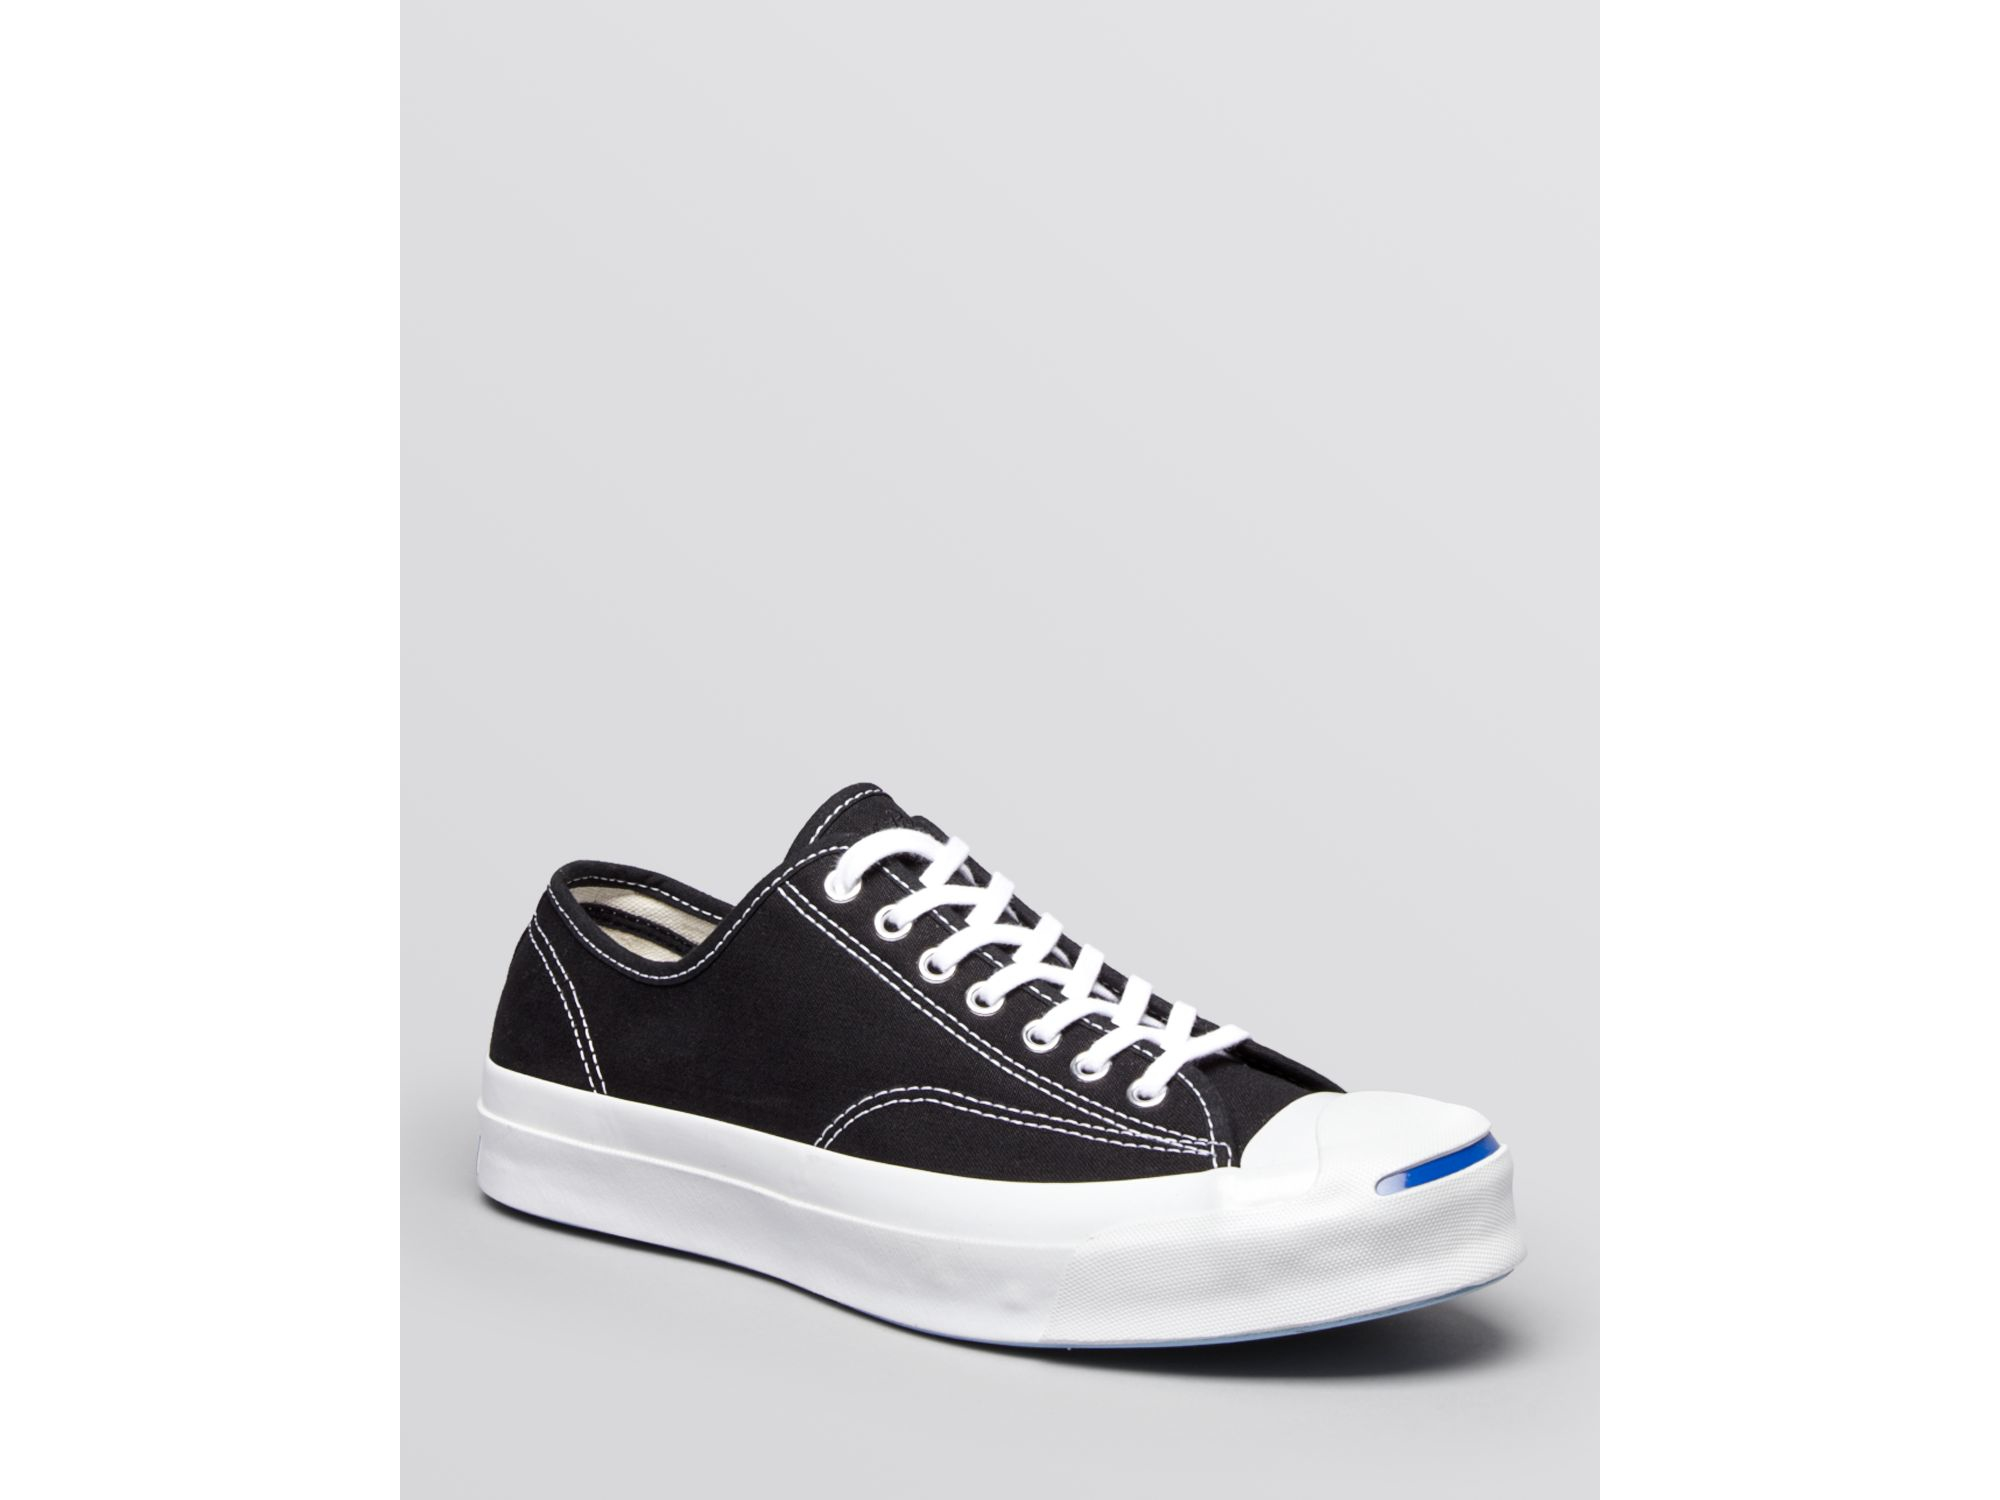 Converse Jack Purcell Signature Canvas Sneakers in Black for Men - Lyst 6a67b06fc